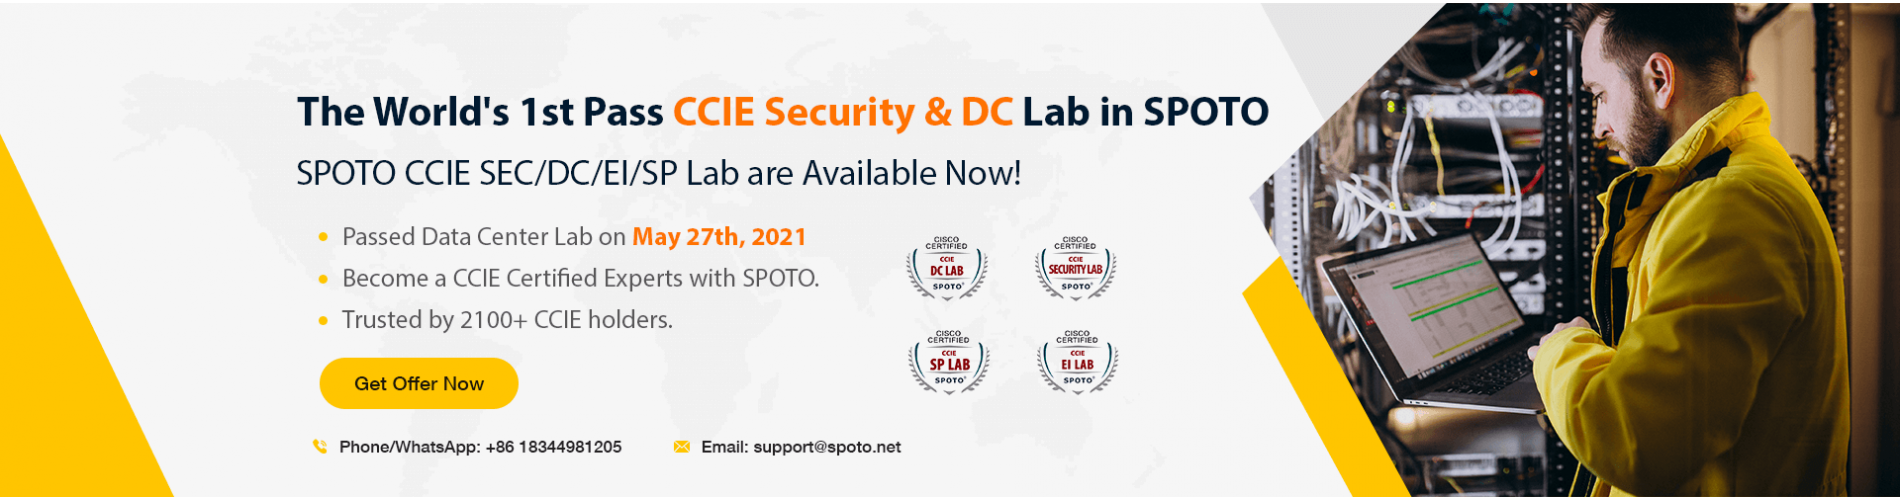 The World's 1st Pass CCIE Security & Lab in SPOTO